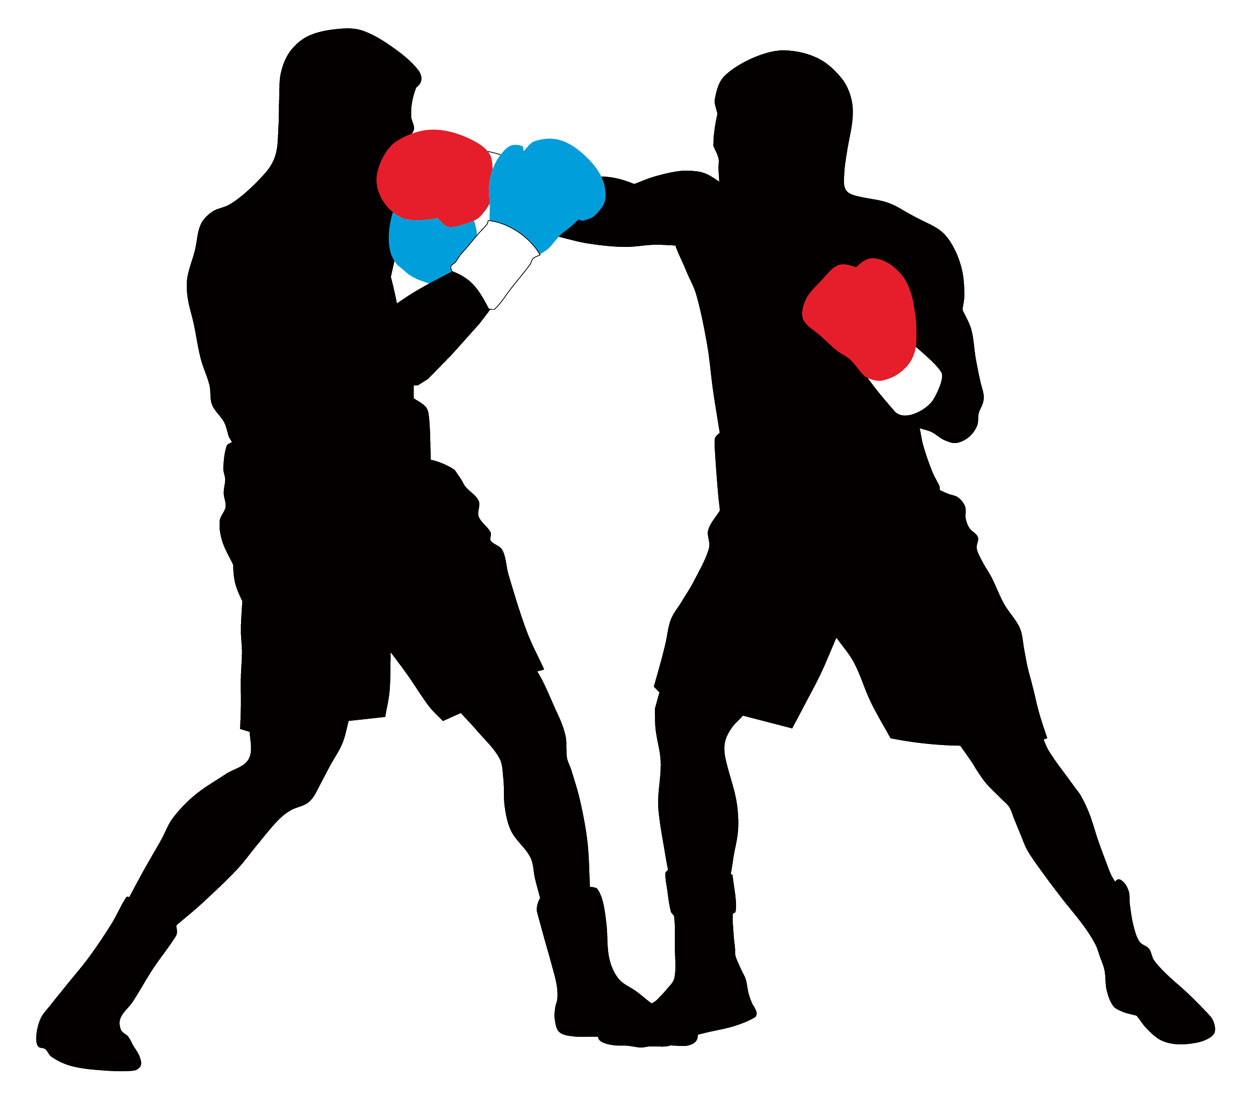 Free Boxing Silhouette Free Cliparts Tha-Free Boxing Silhouette Free Cliparts That You Can Download To You-1